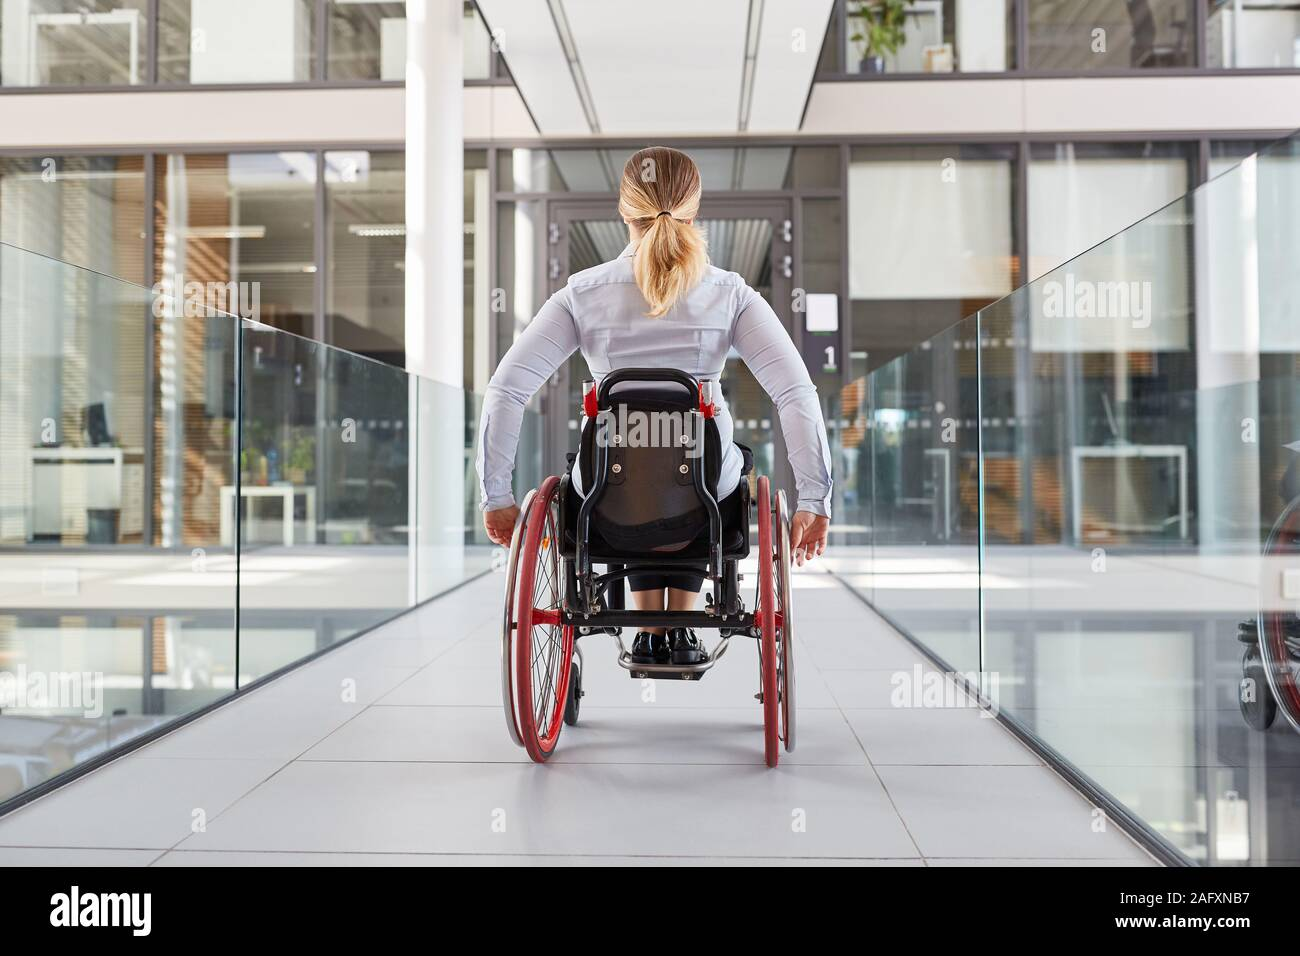 Paralyzed woman in a wheelchair on the move in the disabled office building Stock Photo